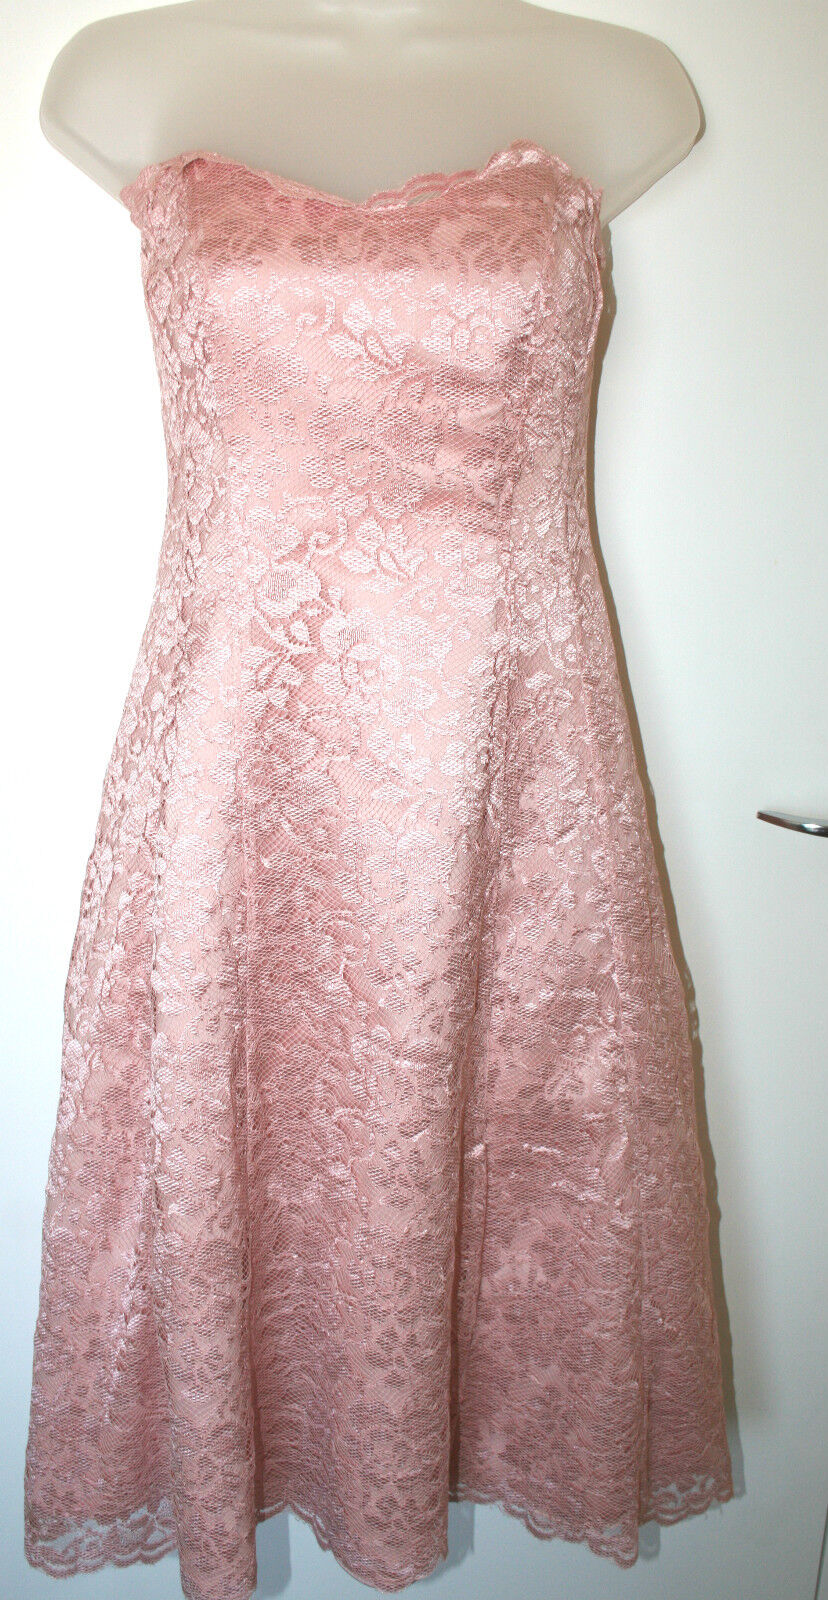 Debenhams Debut UK8 EU36 new Rosa lace prom dress with boned bodice